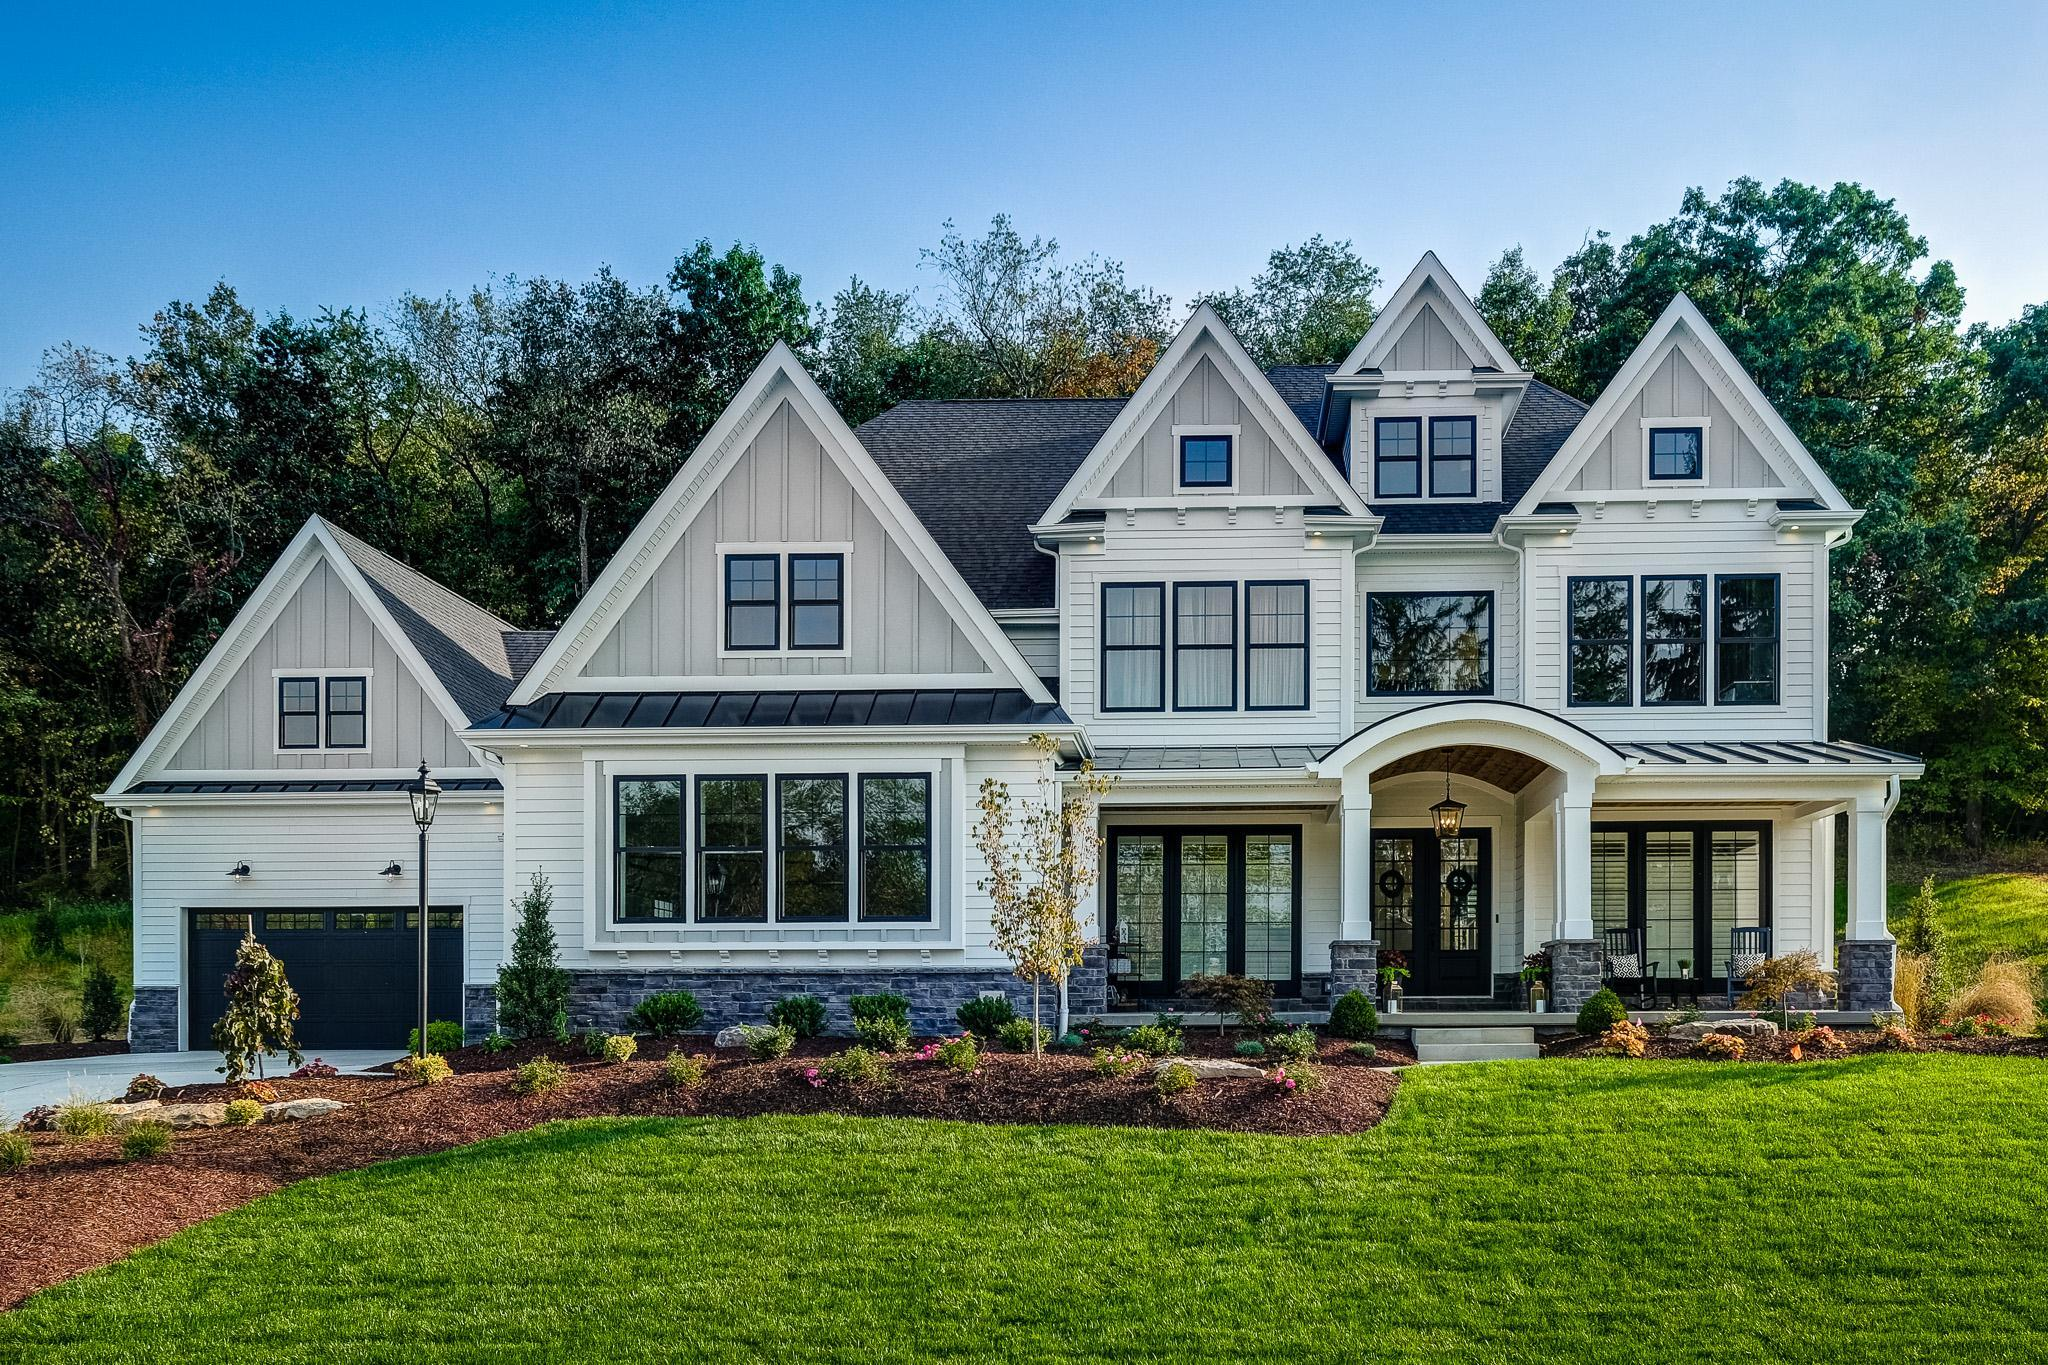 'Forest Edge' by Infinity Custom Homes in Pittsburgh